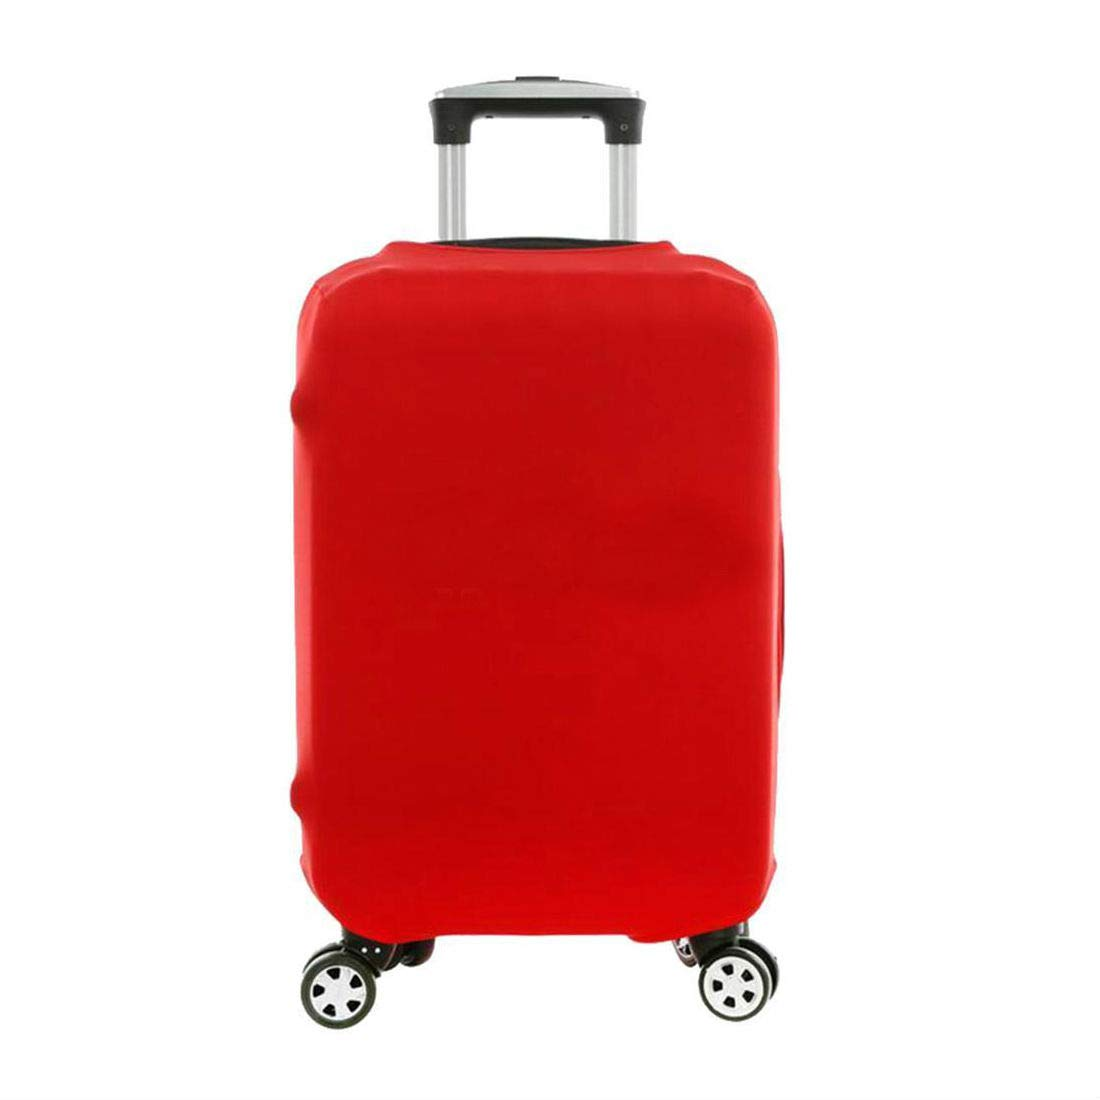 Red Elastic Luggage Suitcase Bags Cover Protector Anti scratch 18'' 20'' 22'' 24'' 28'' (L - (26''-30'')) by Unknown